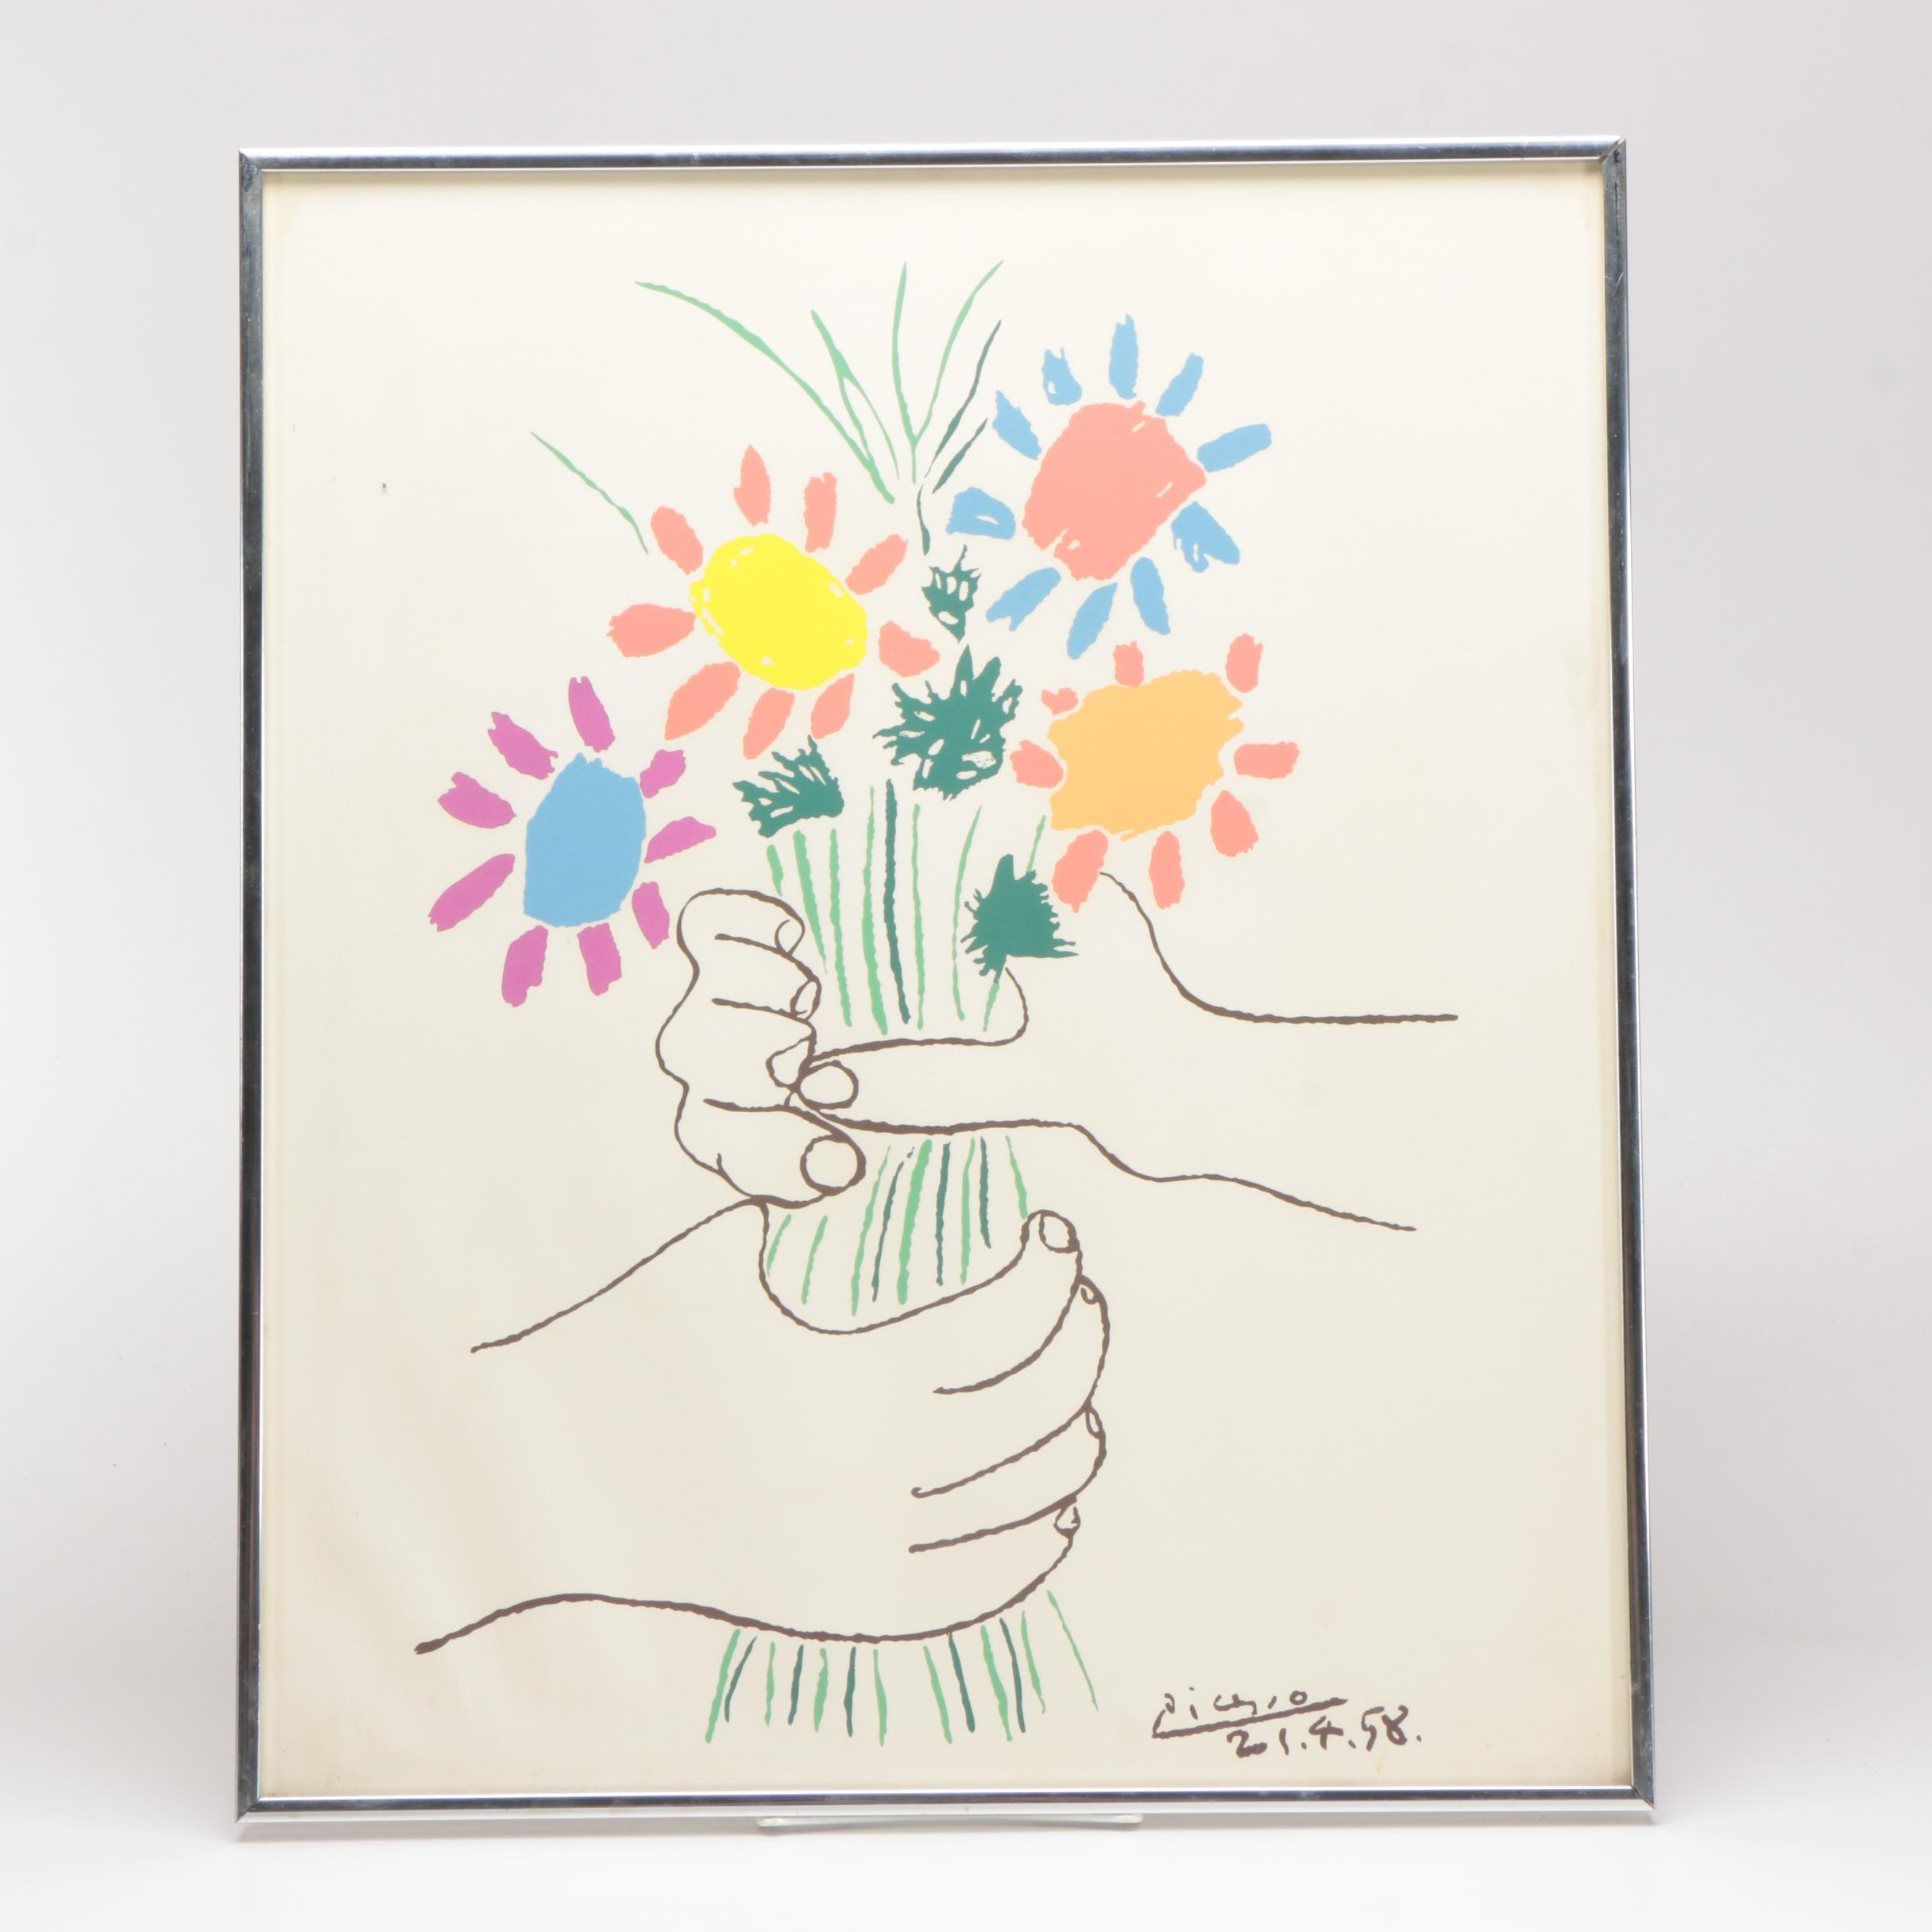 """Framed Serigraph After Pablo Picasso """"Hands With Flowers"""""""